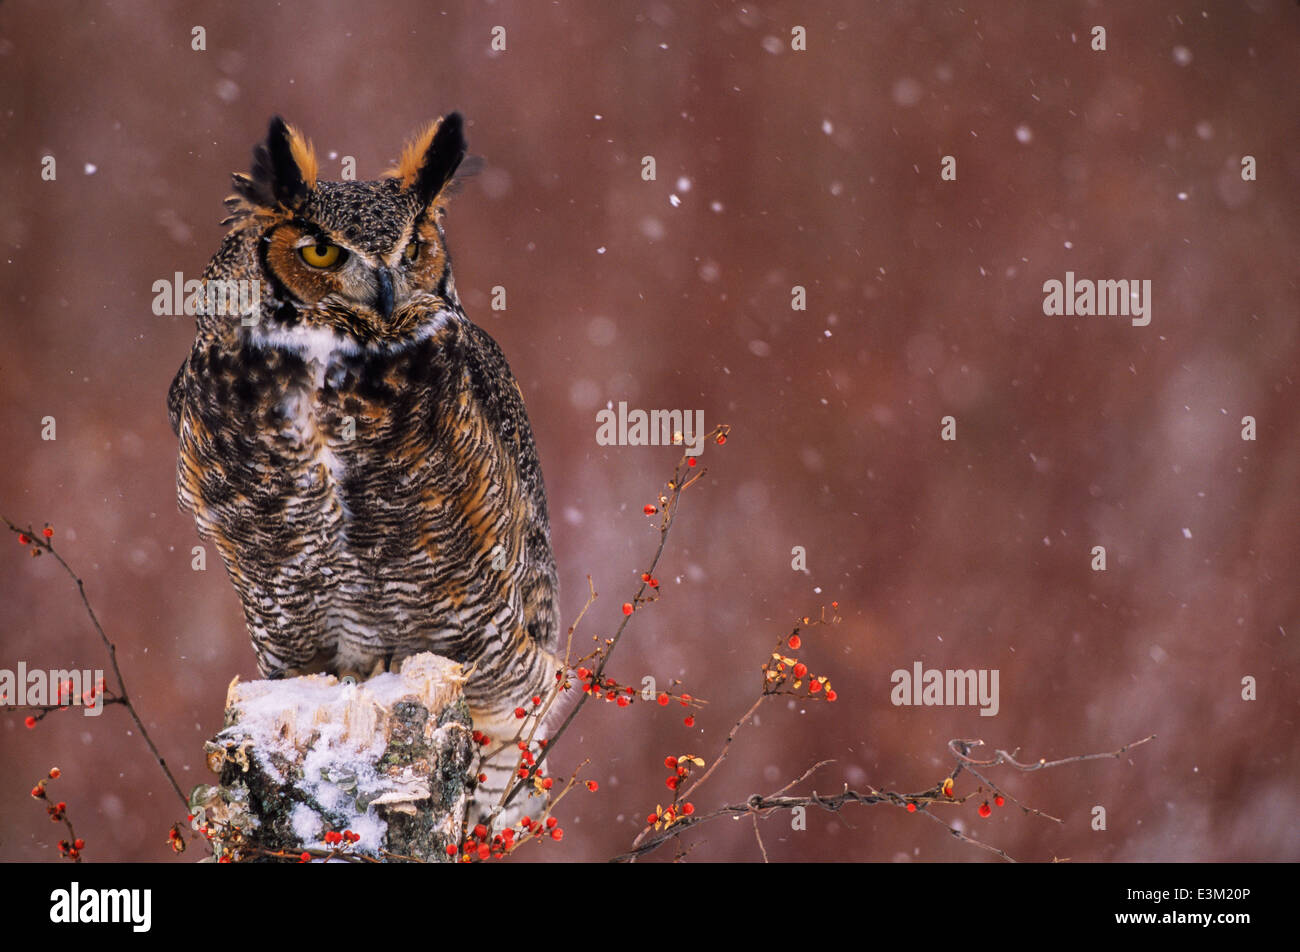 A Great Horned Owl (Bubo virginianus) perches during a snowstorm, with bittersweet berries. - Stock Image